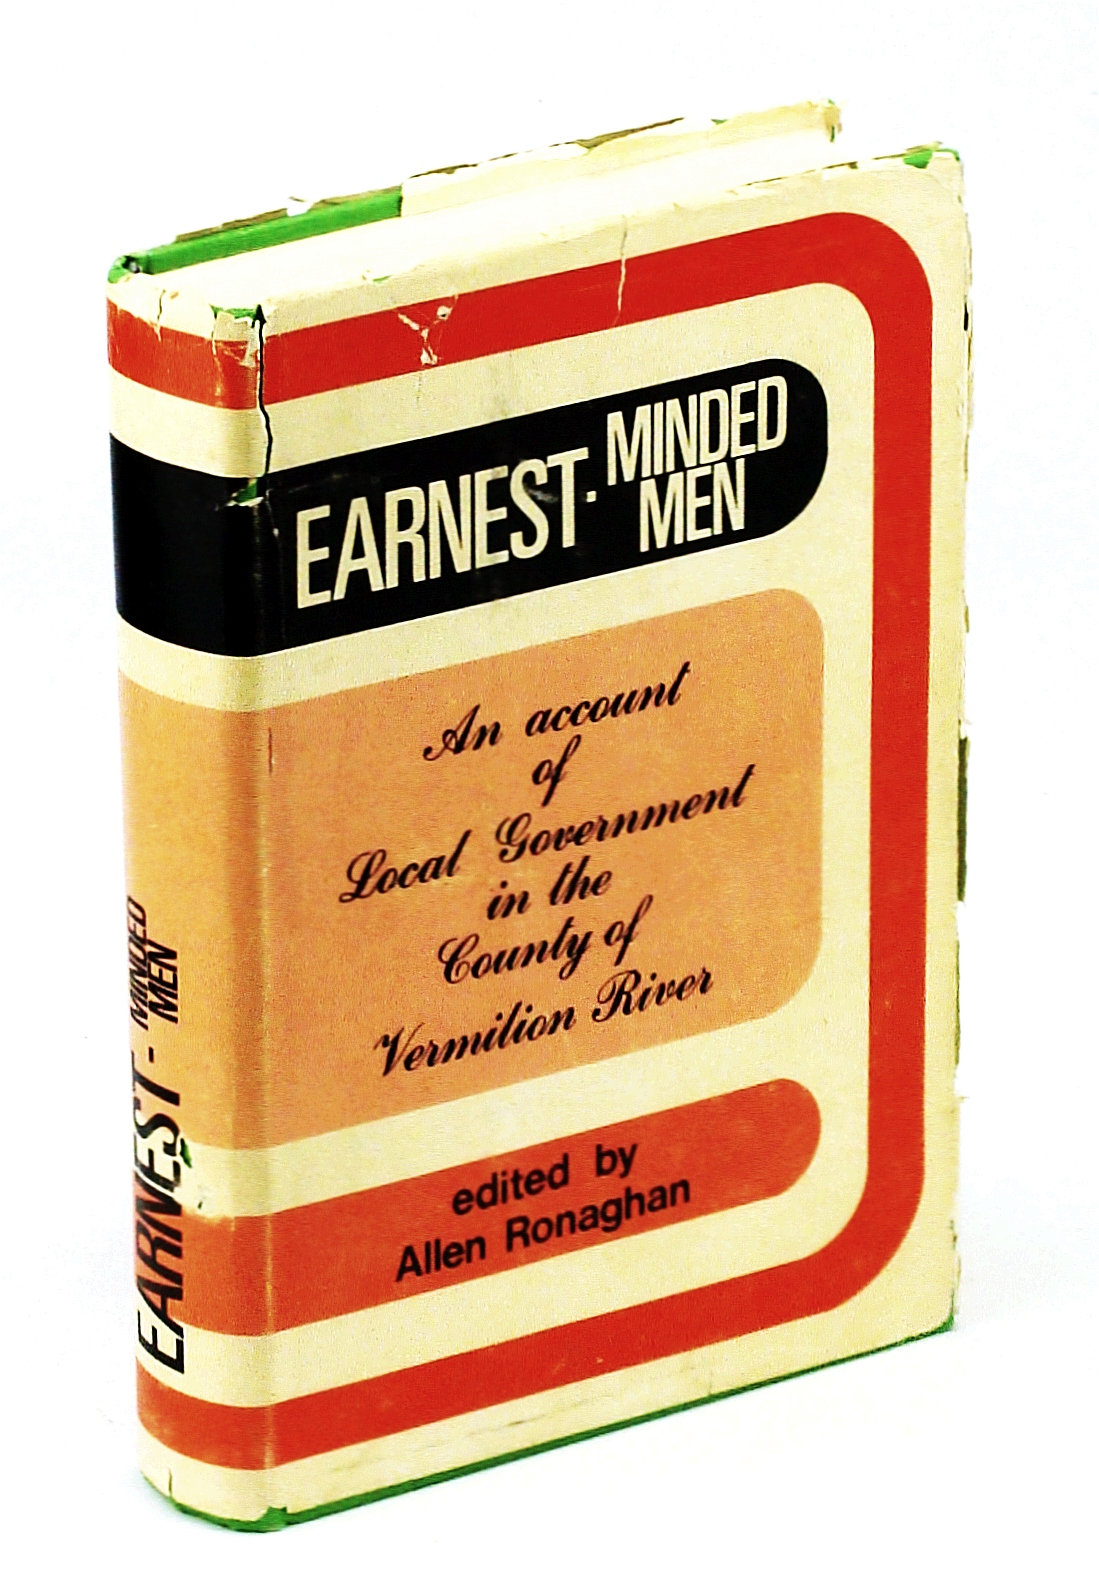 Image for Earnest Minded Men : an Account of Local Government in the County of Vermilion River